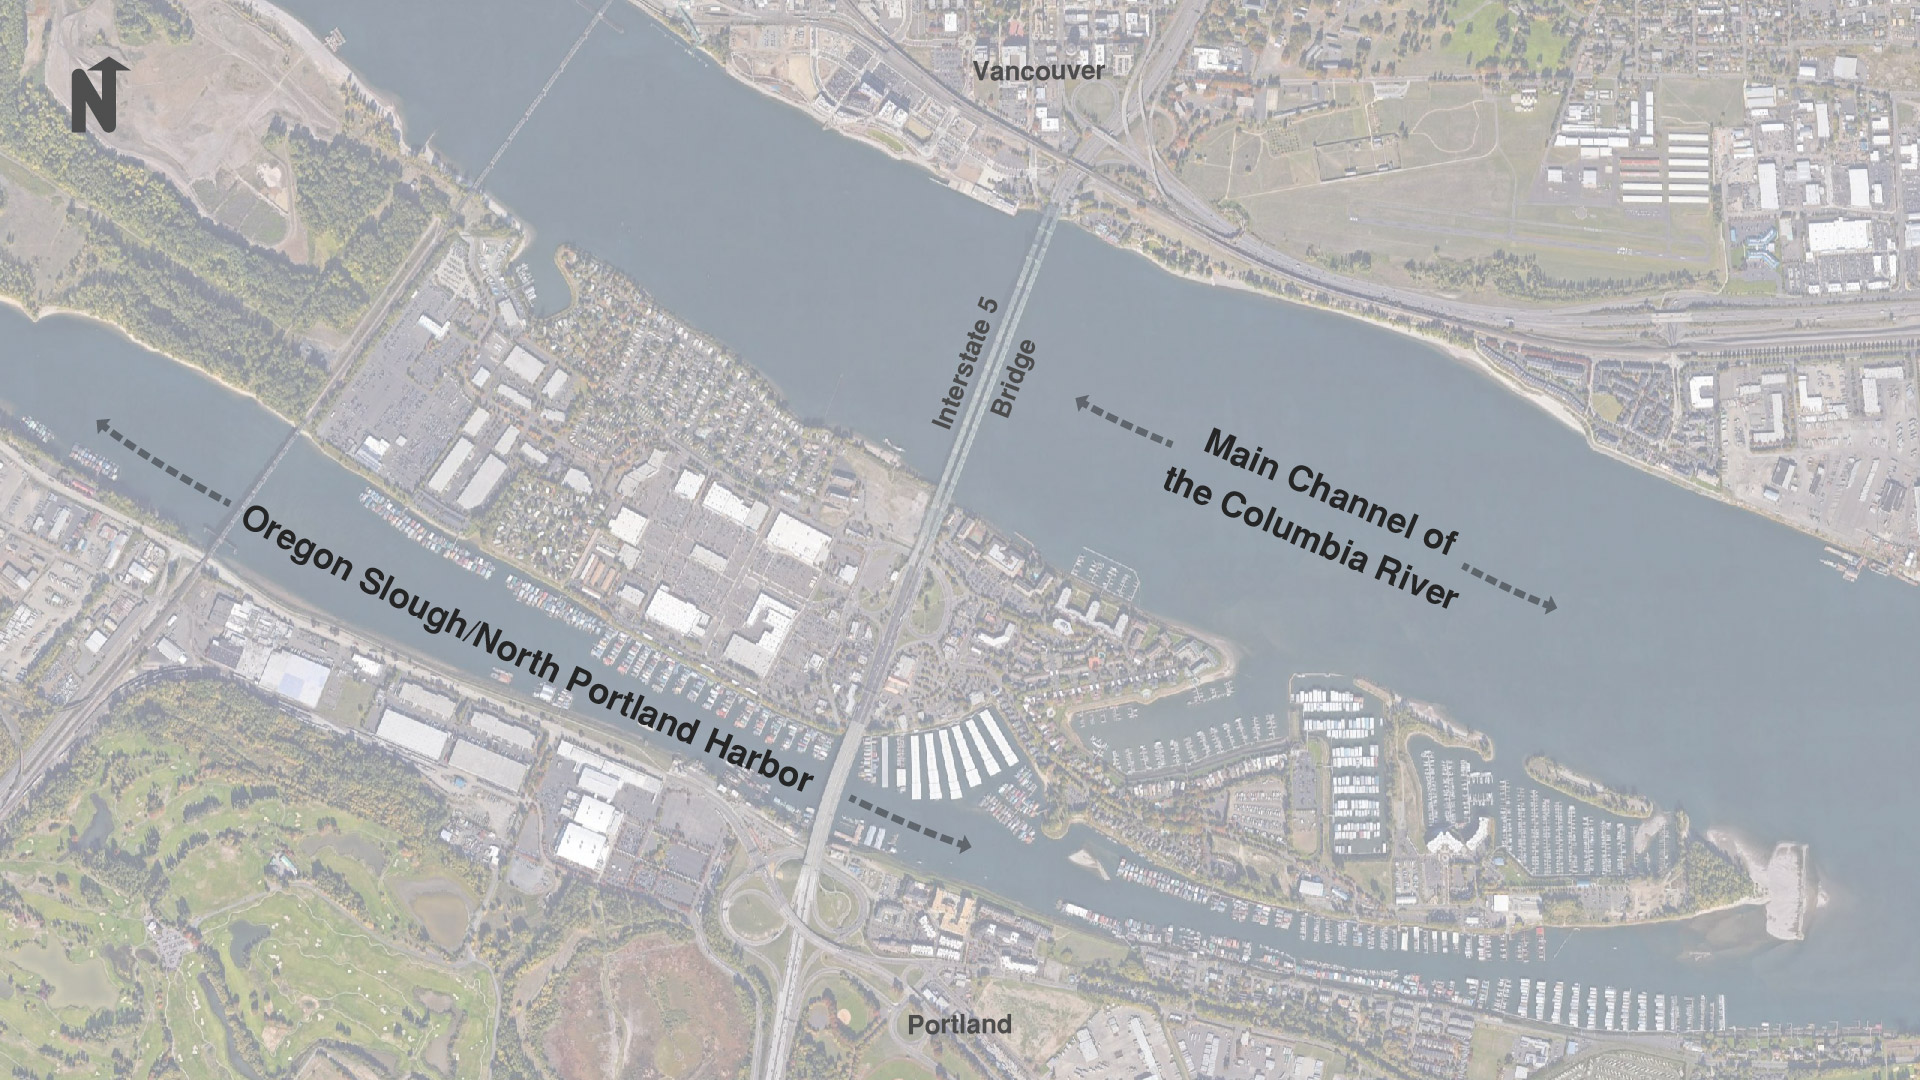 Map showing the location of the main channel of the Columbia River and the Oregon Slough